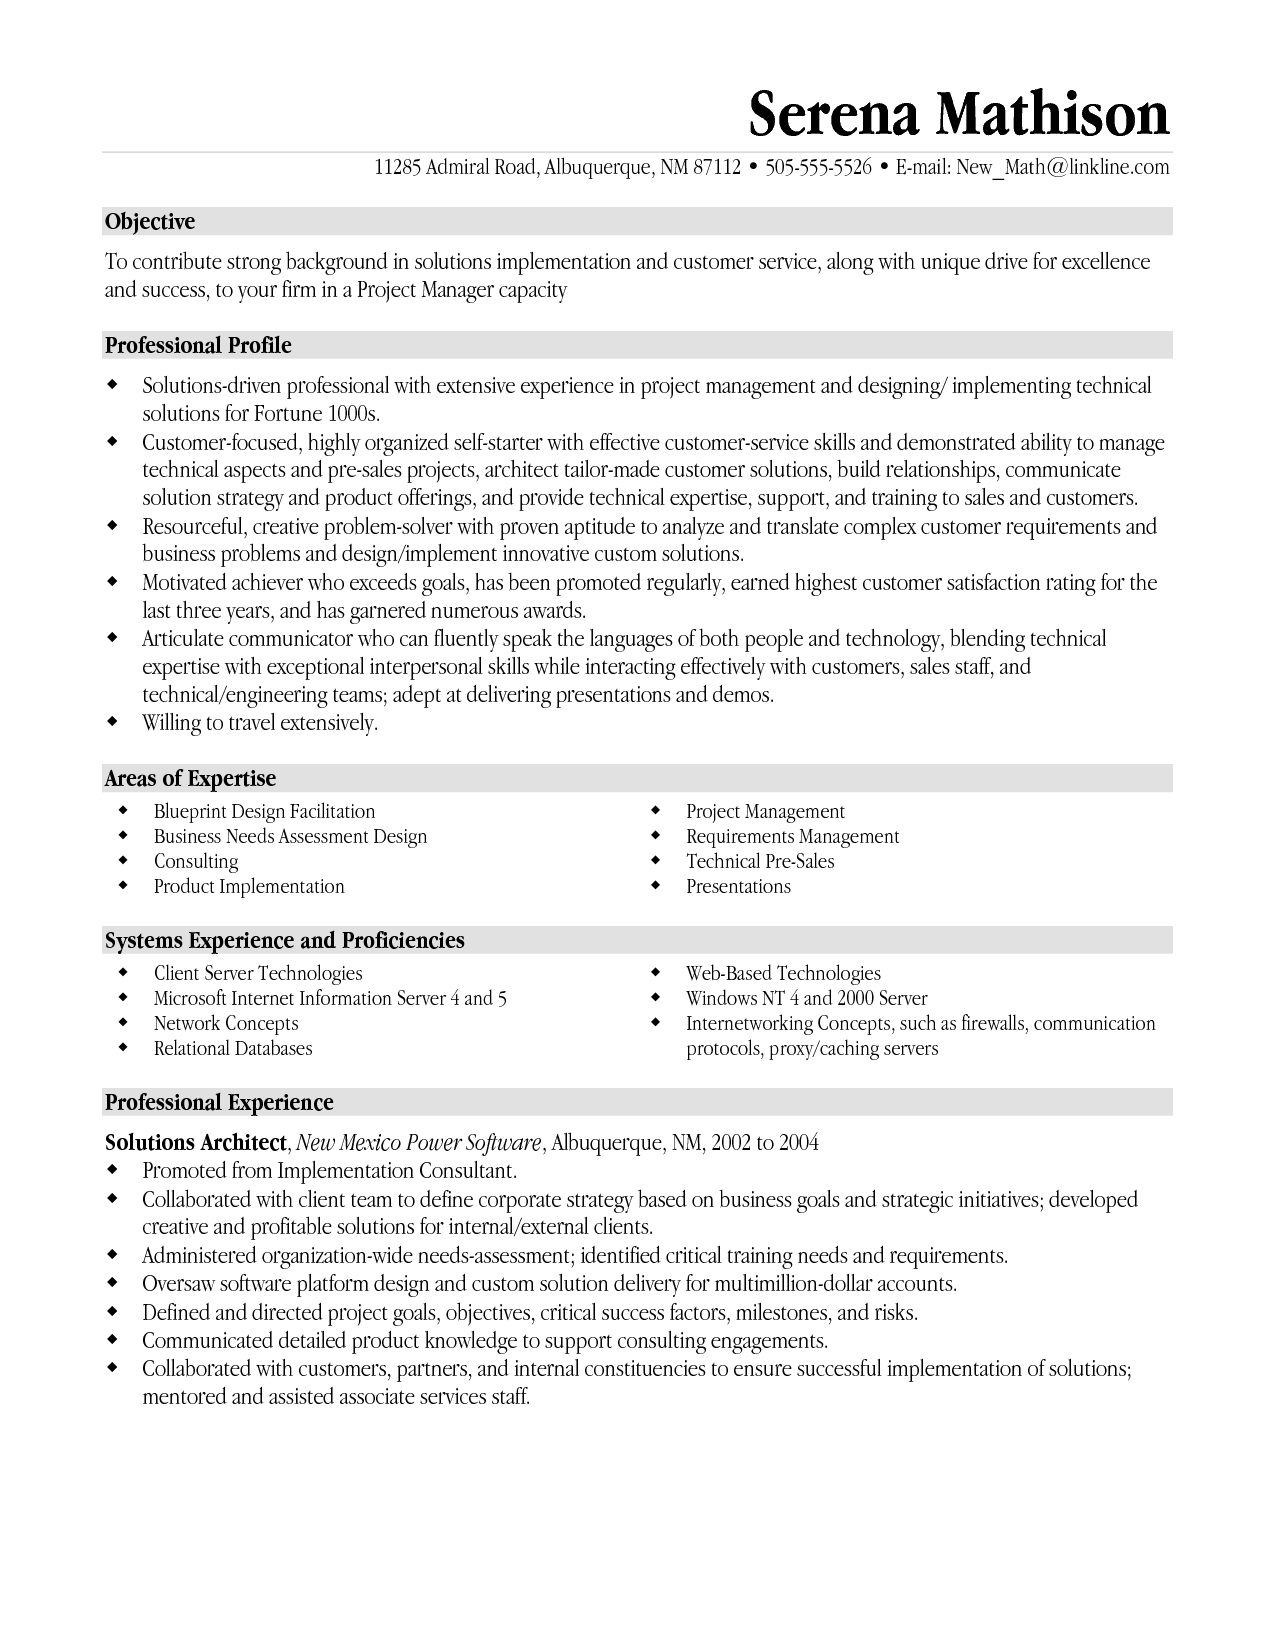 Attractive Resume Templates Project Manager | Project Management Resume To Management Resumes